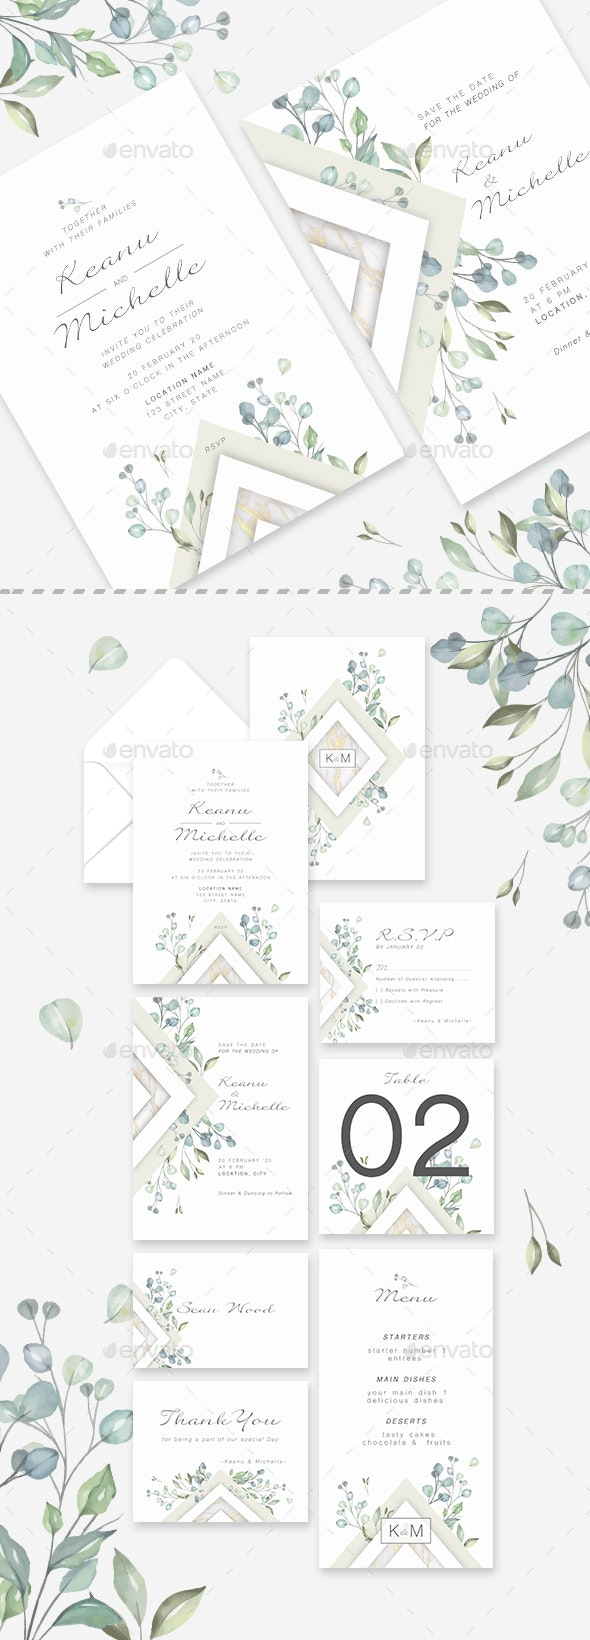 Botanical Wedding Invitation Suite - Weddings Cards & Invites